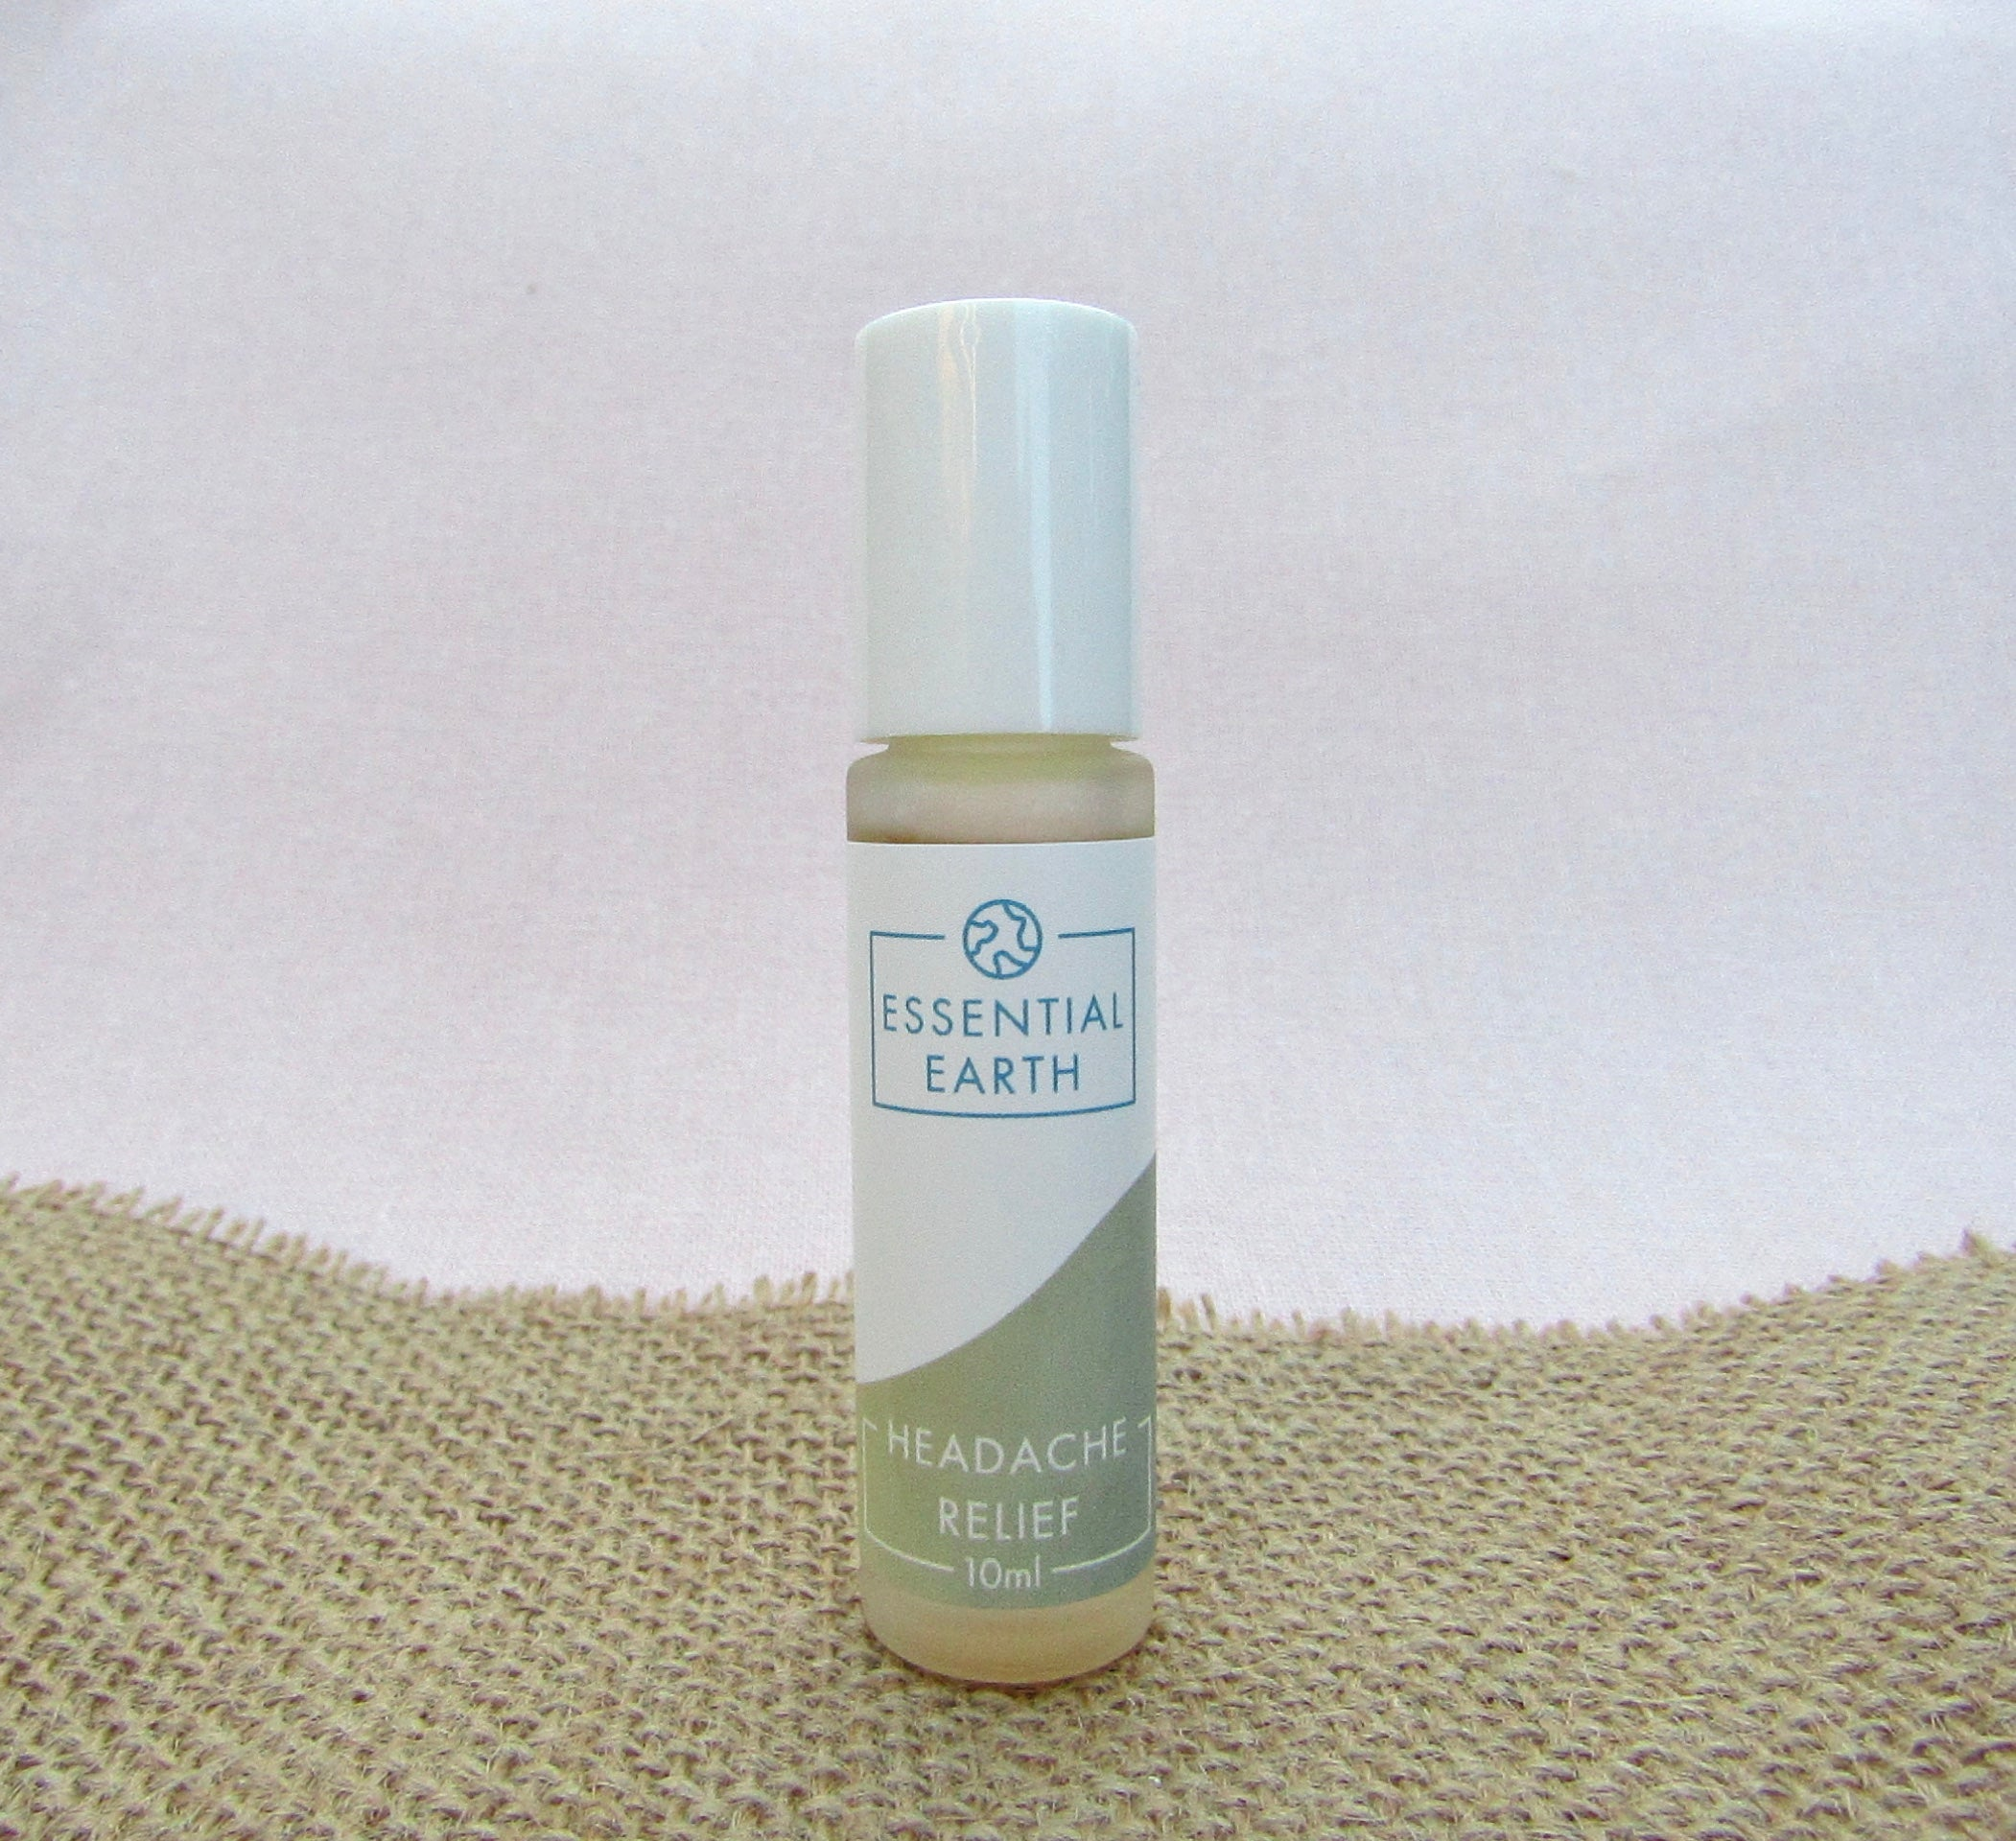 'Headache Relief' Essential Oil Roller - Essential Earth